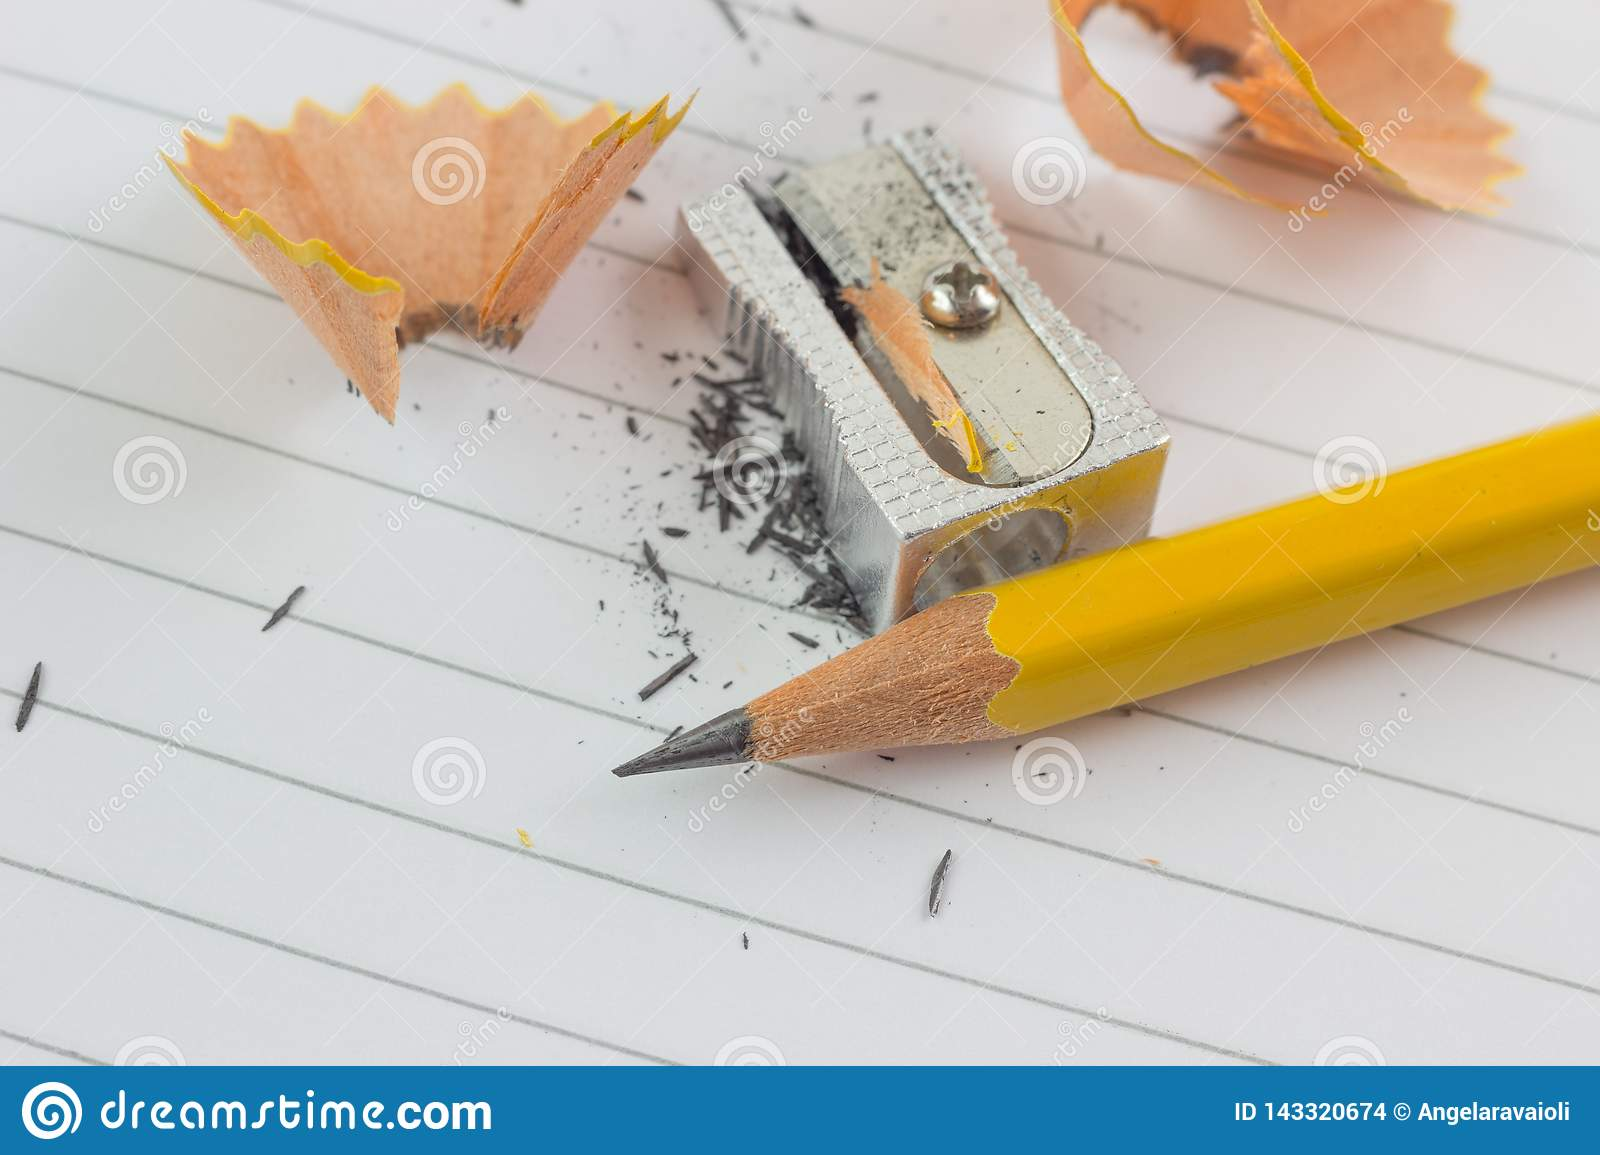 Pencil and sharpened